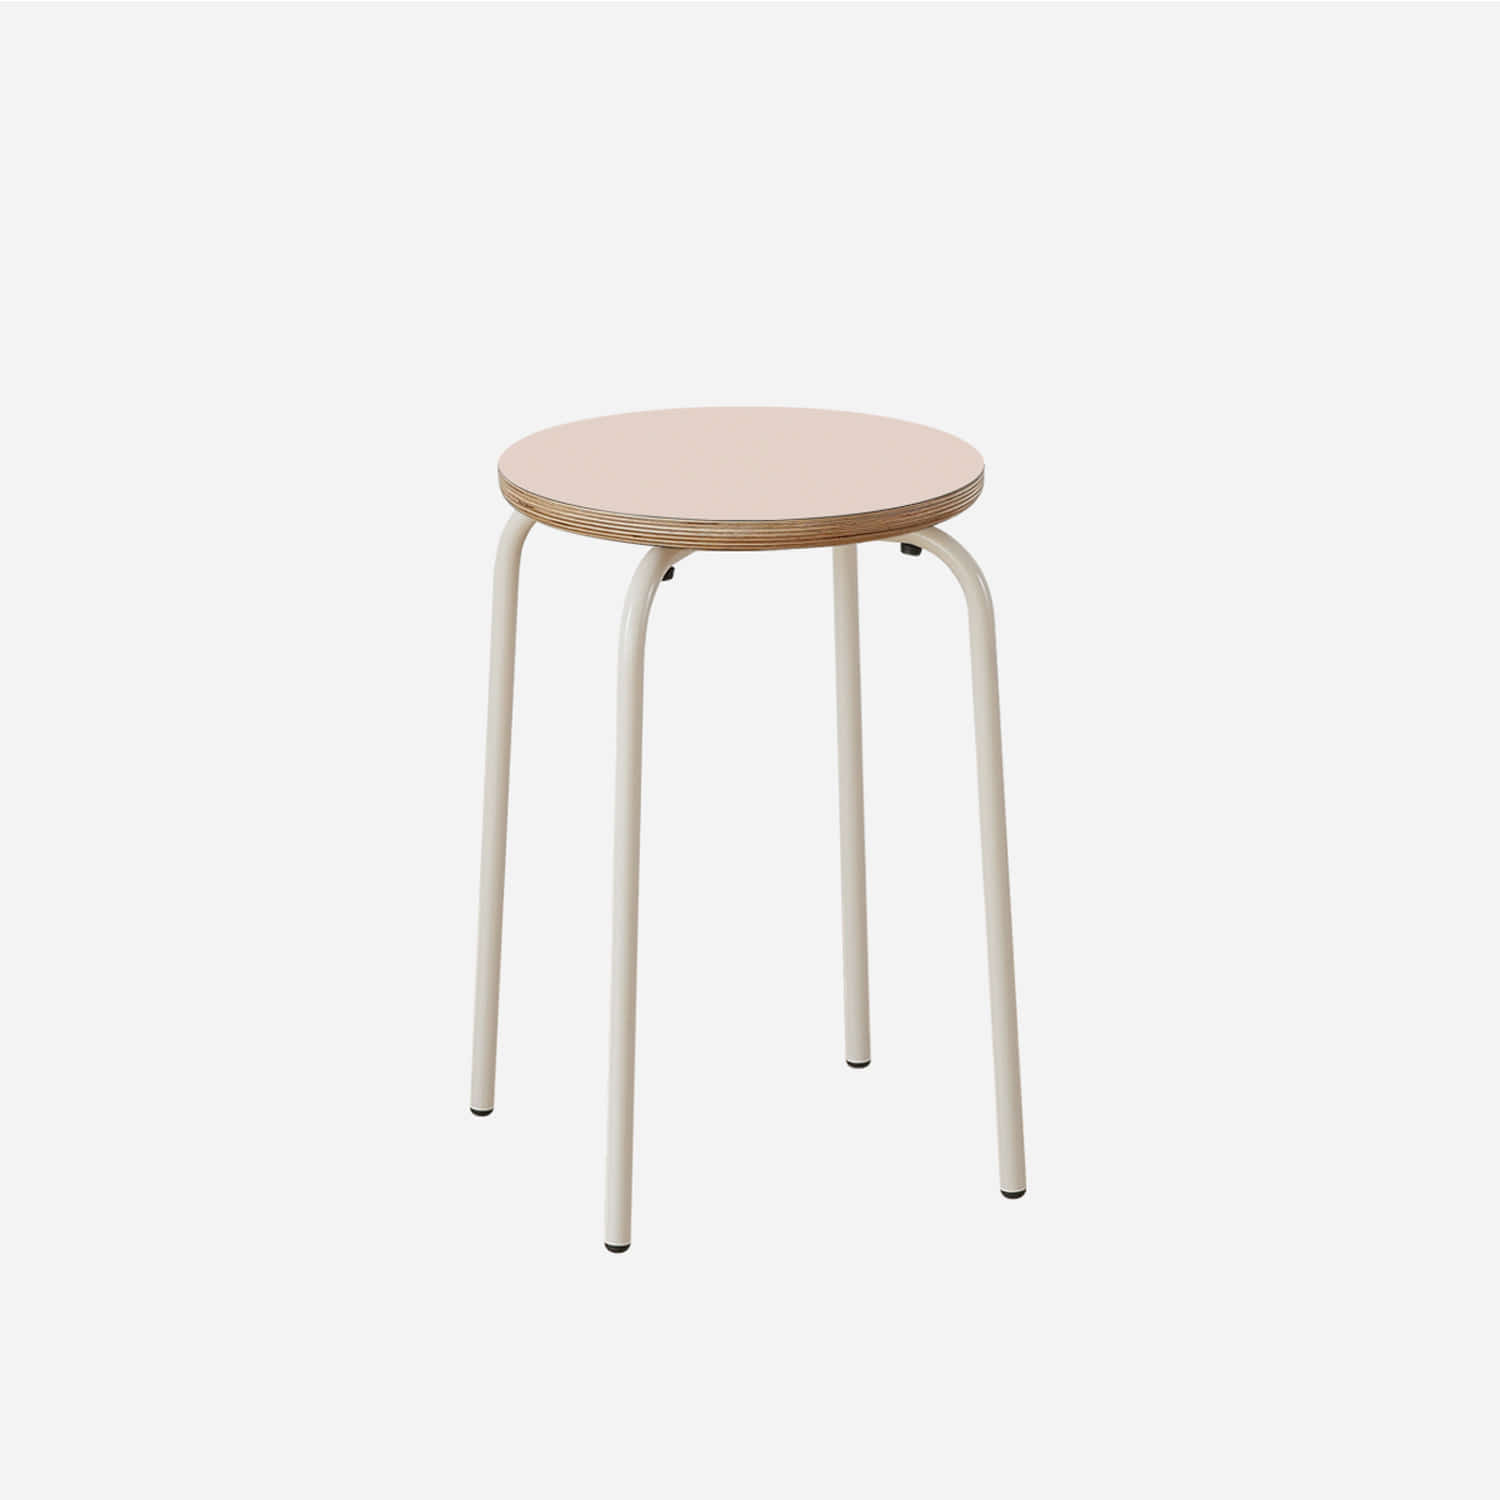 [6일배송가능] Lino Round Tube Stool